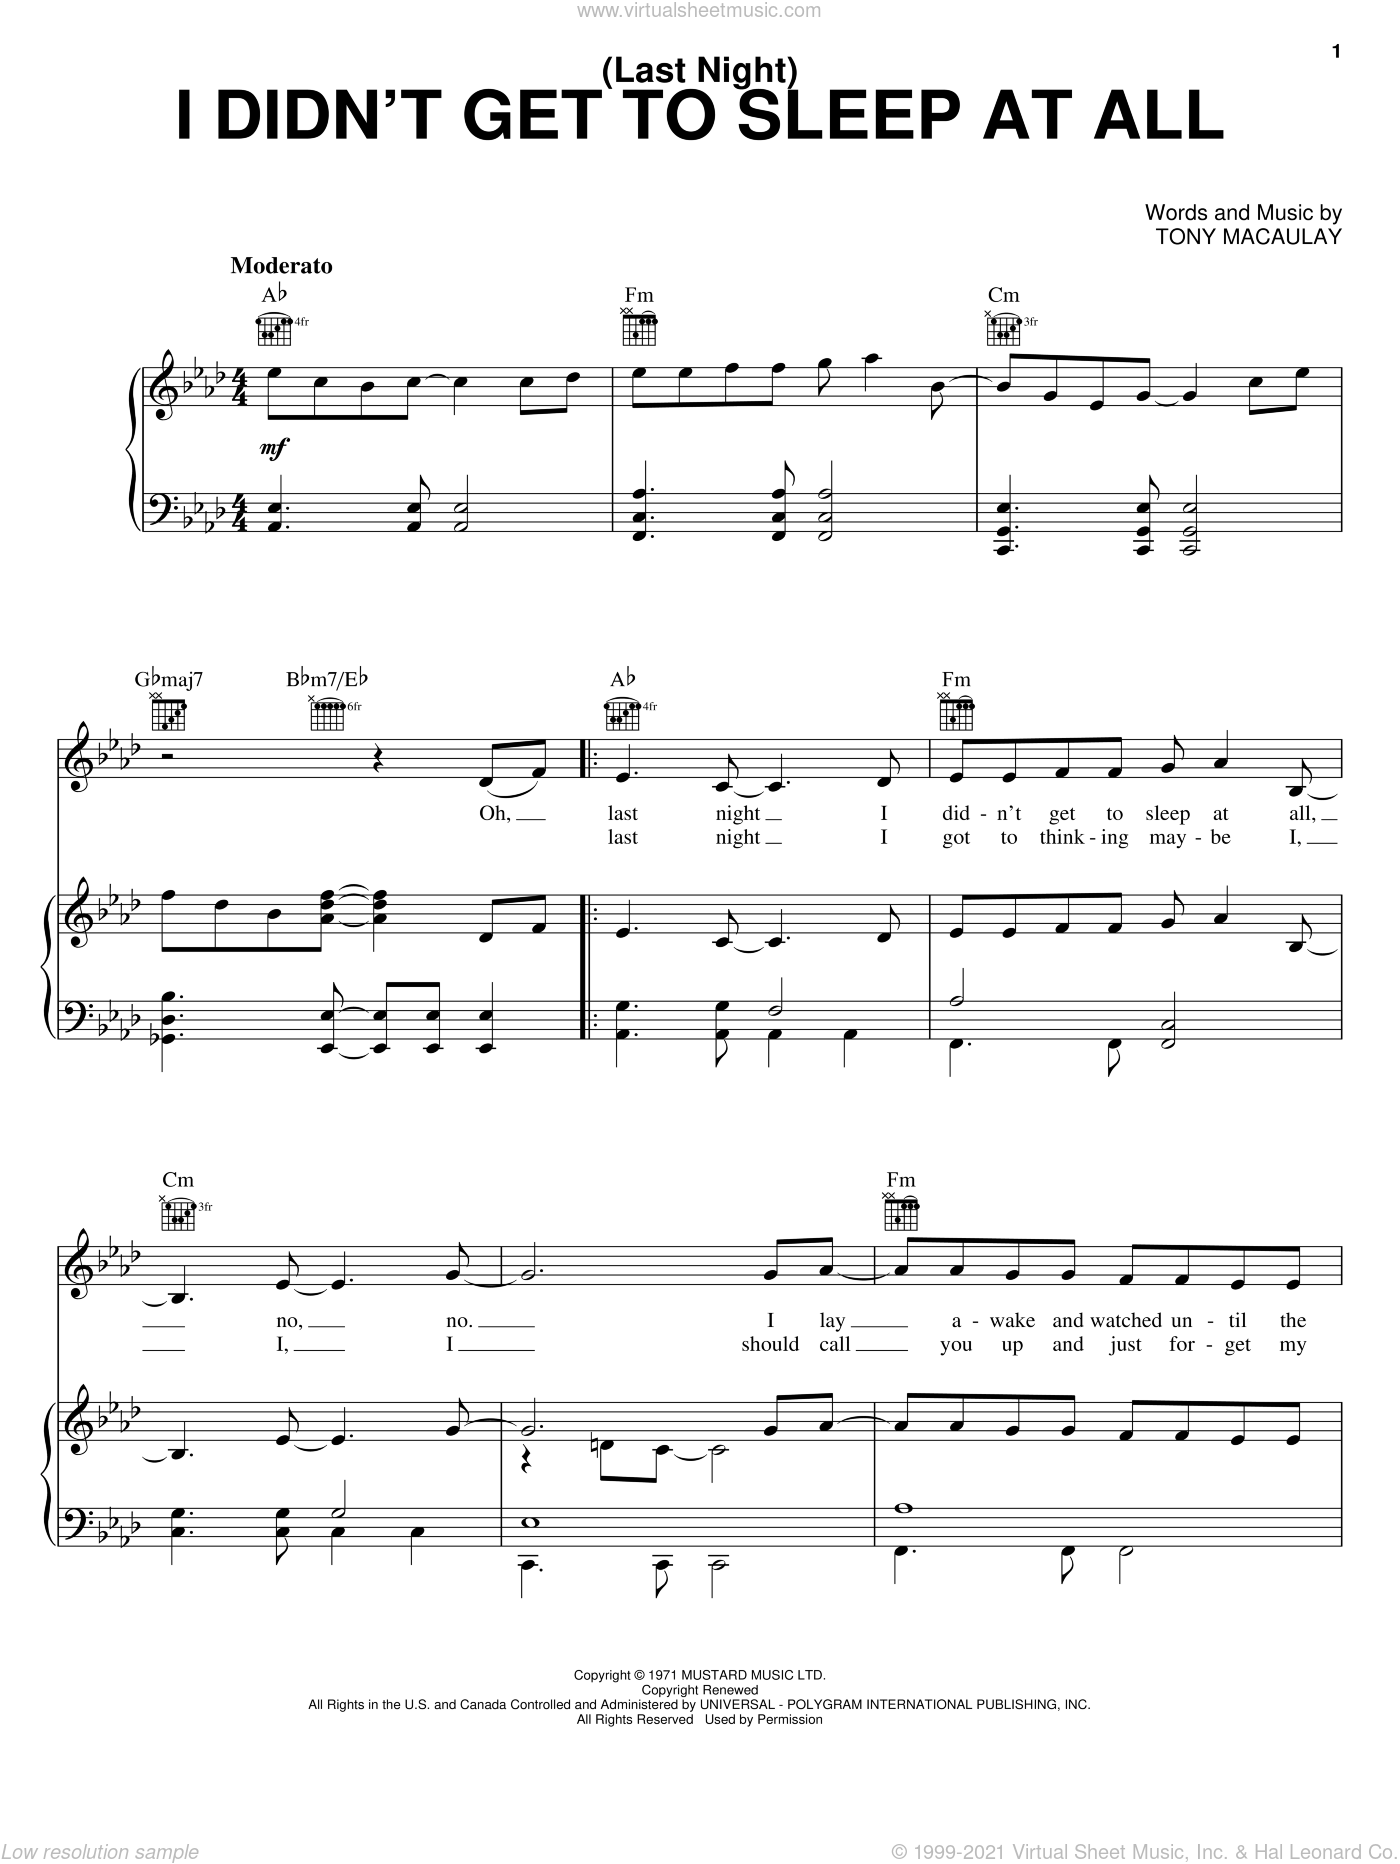 (Last Night) I Didn't Get To Sleep At All sheet music for voice, piano or guitar by Tony Macaulay and The Fifth Dimension. Score Image Preview.